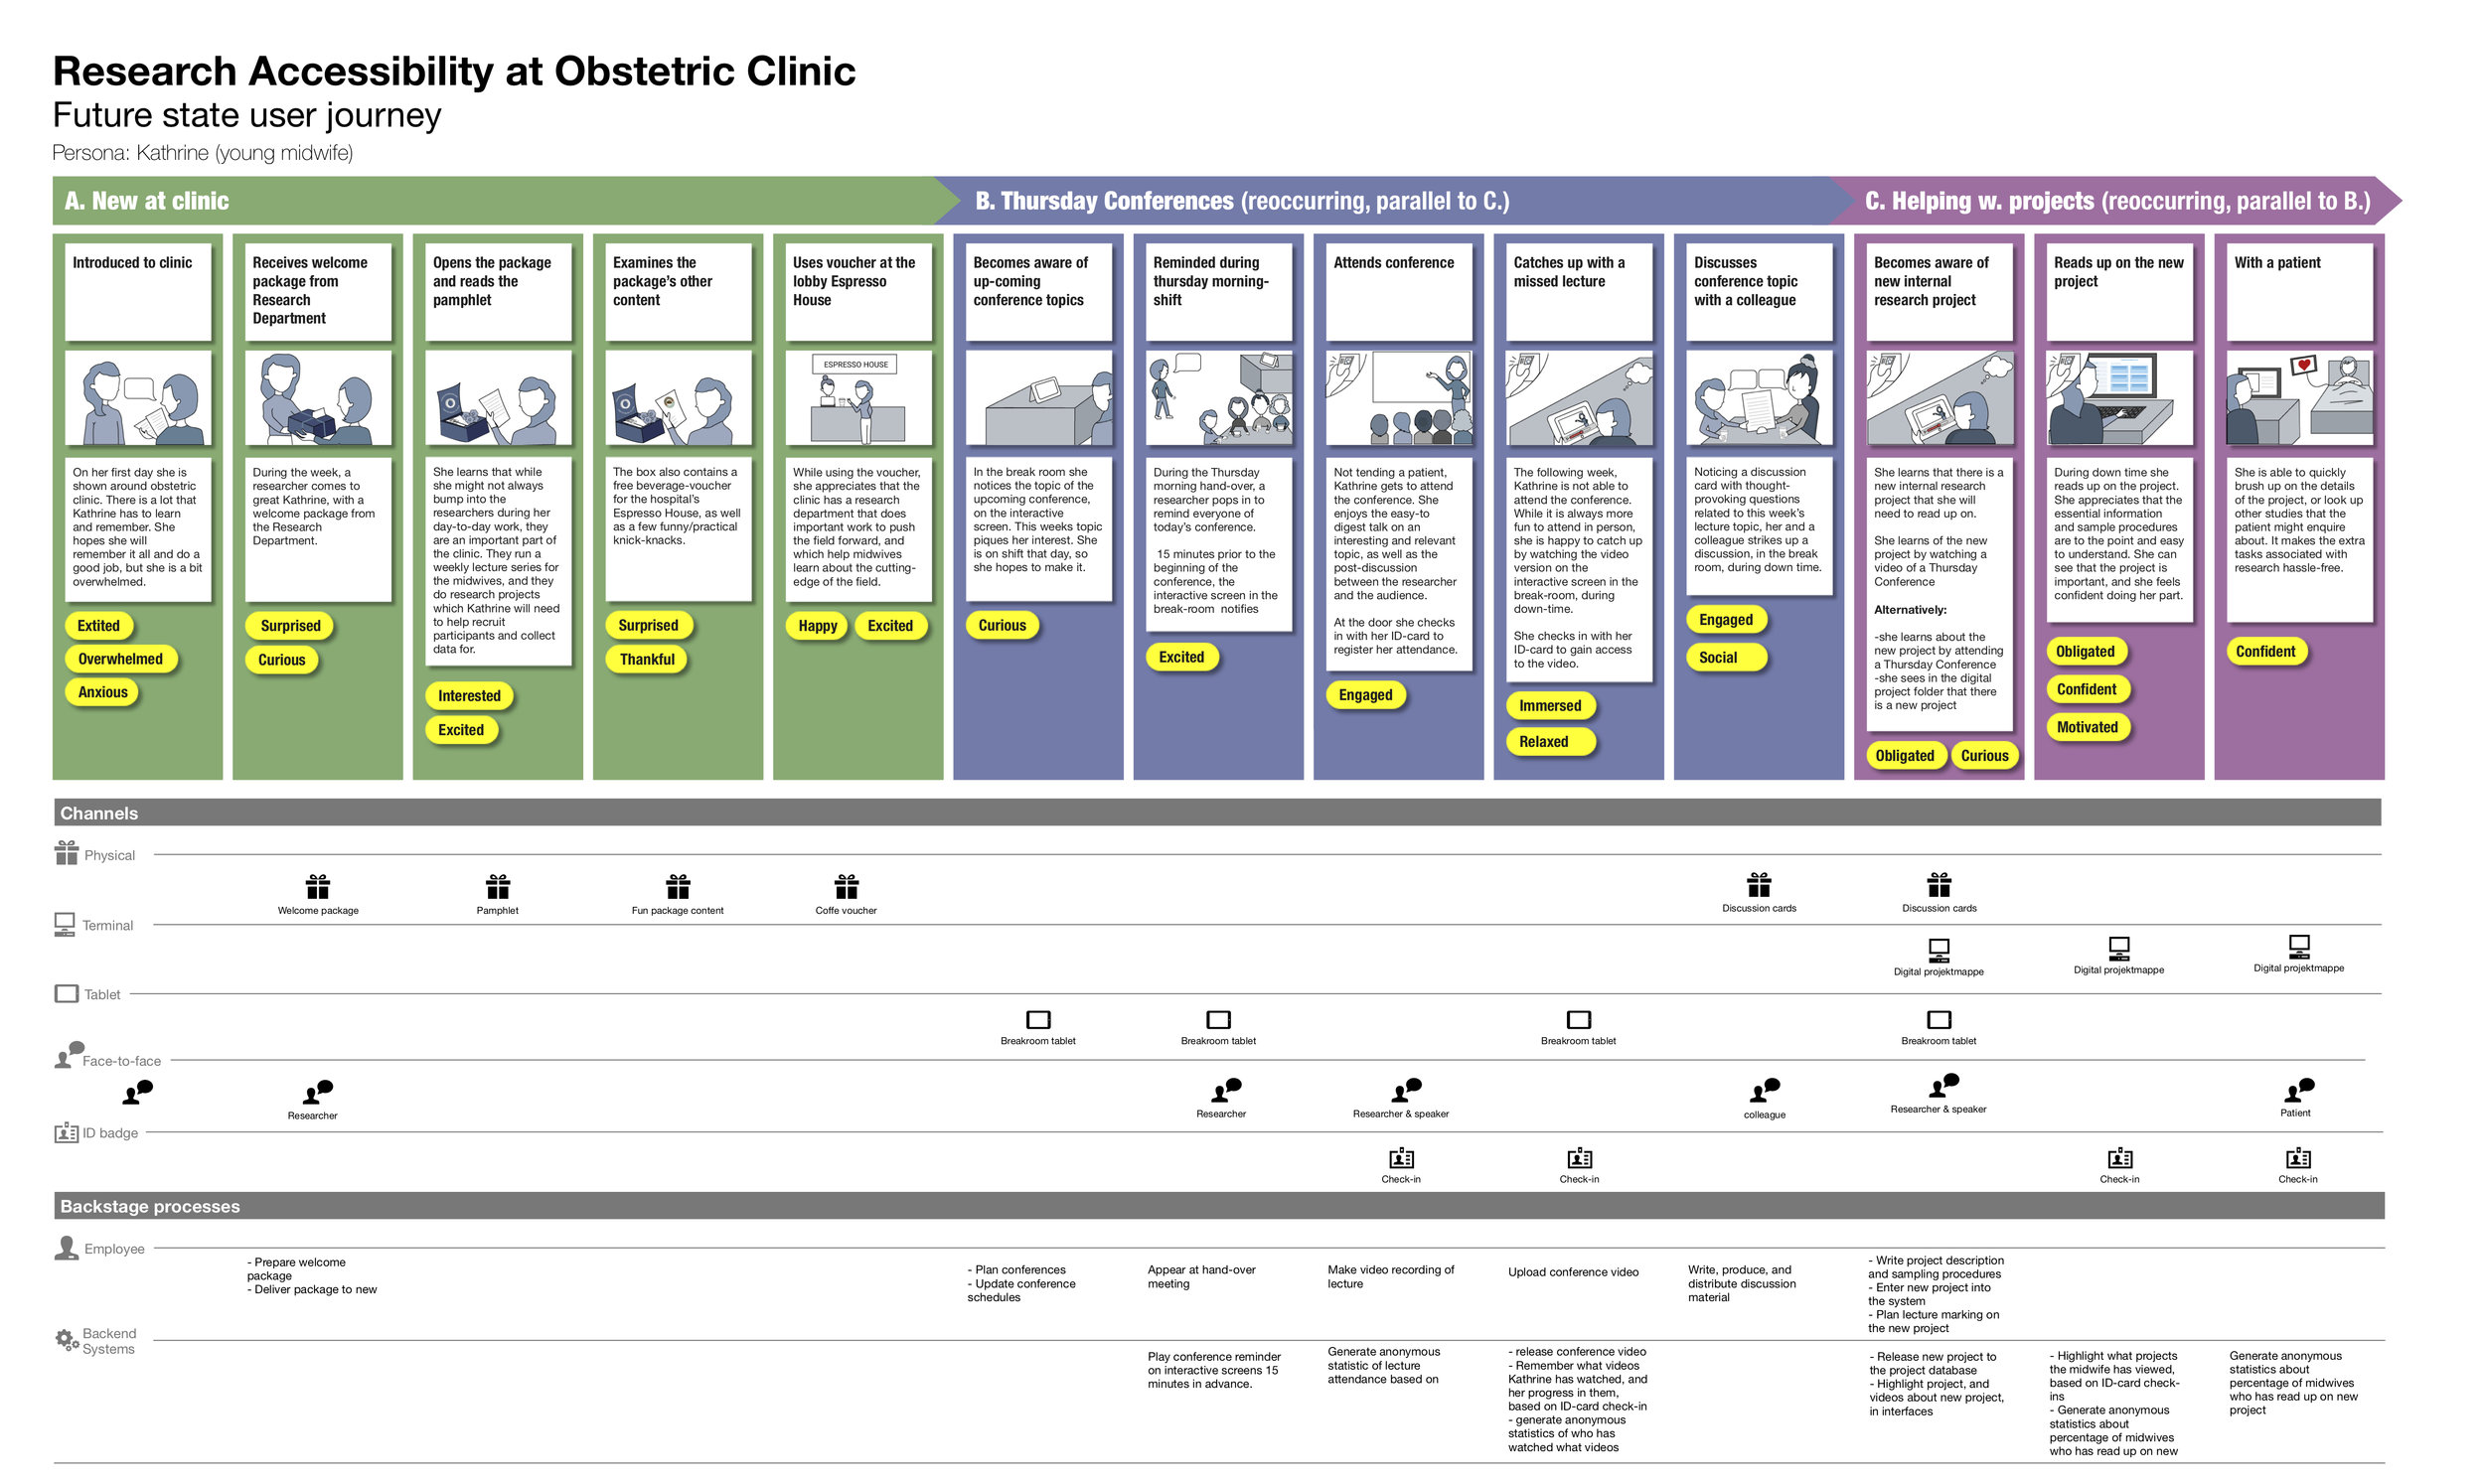 Combined journey map and service blueprint, describing the envisioned future service.